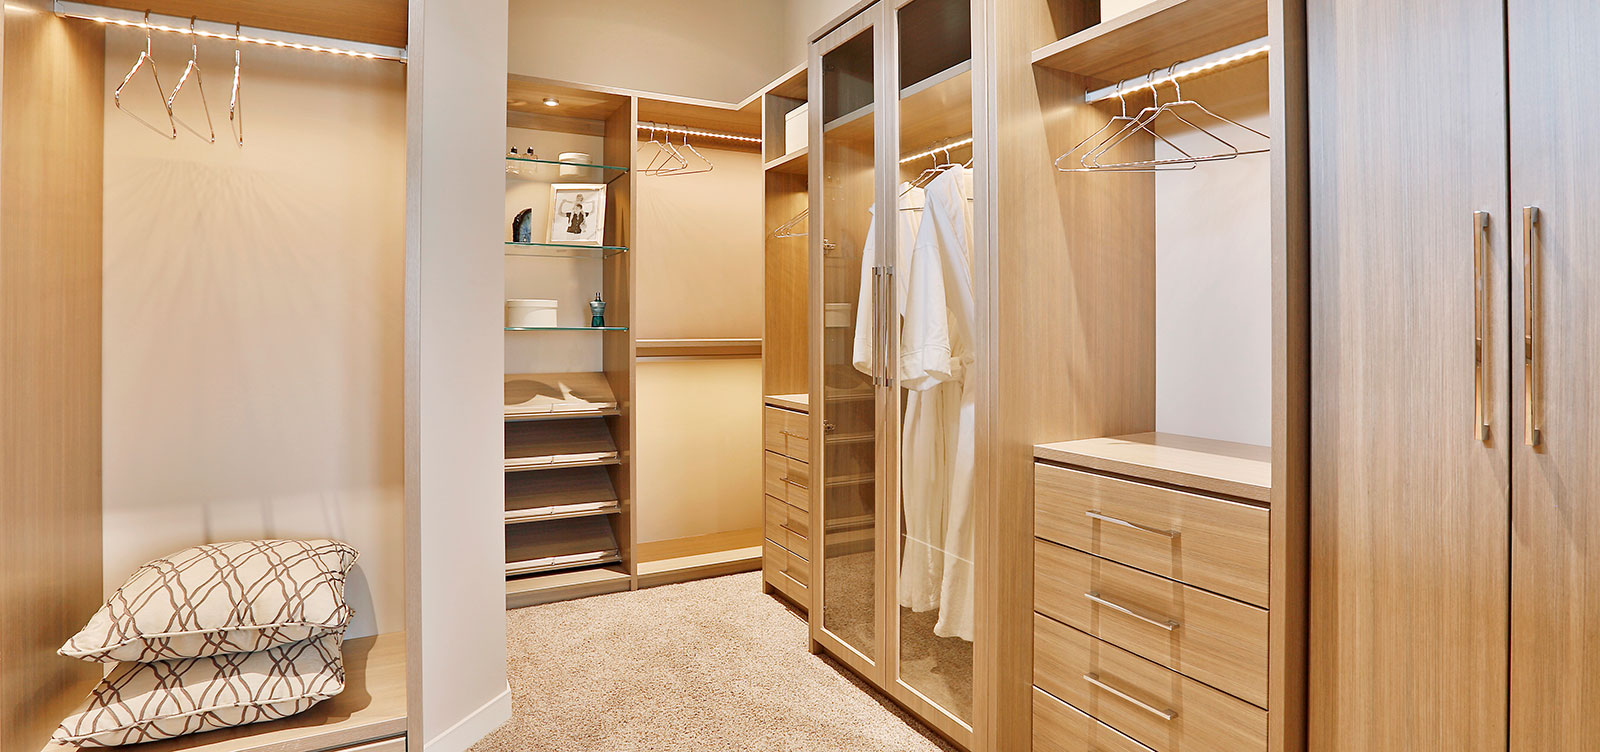 Rose Lake Court Walk-in Closet